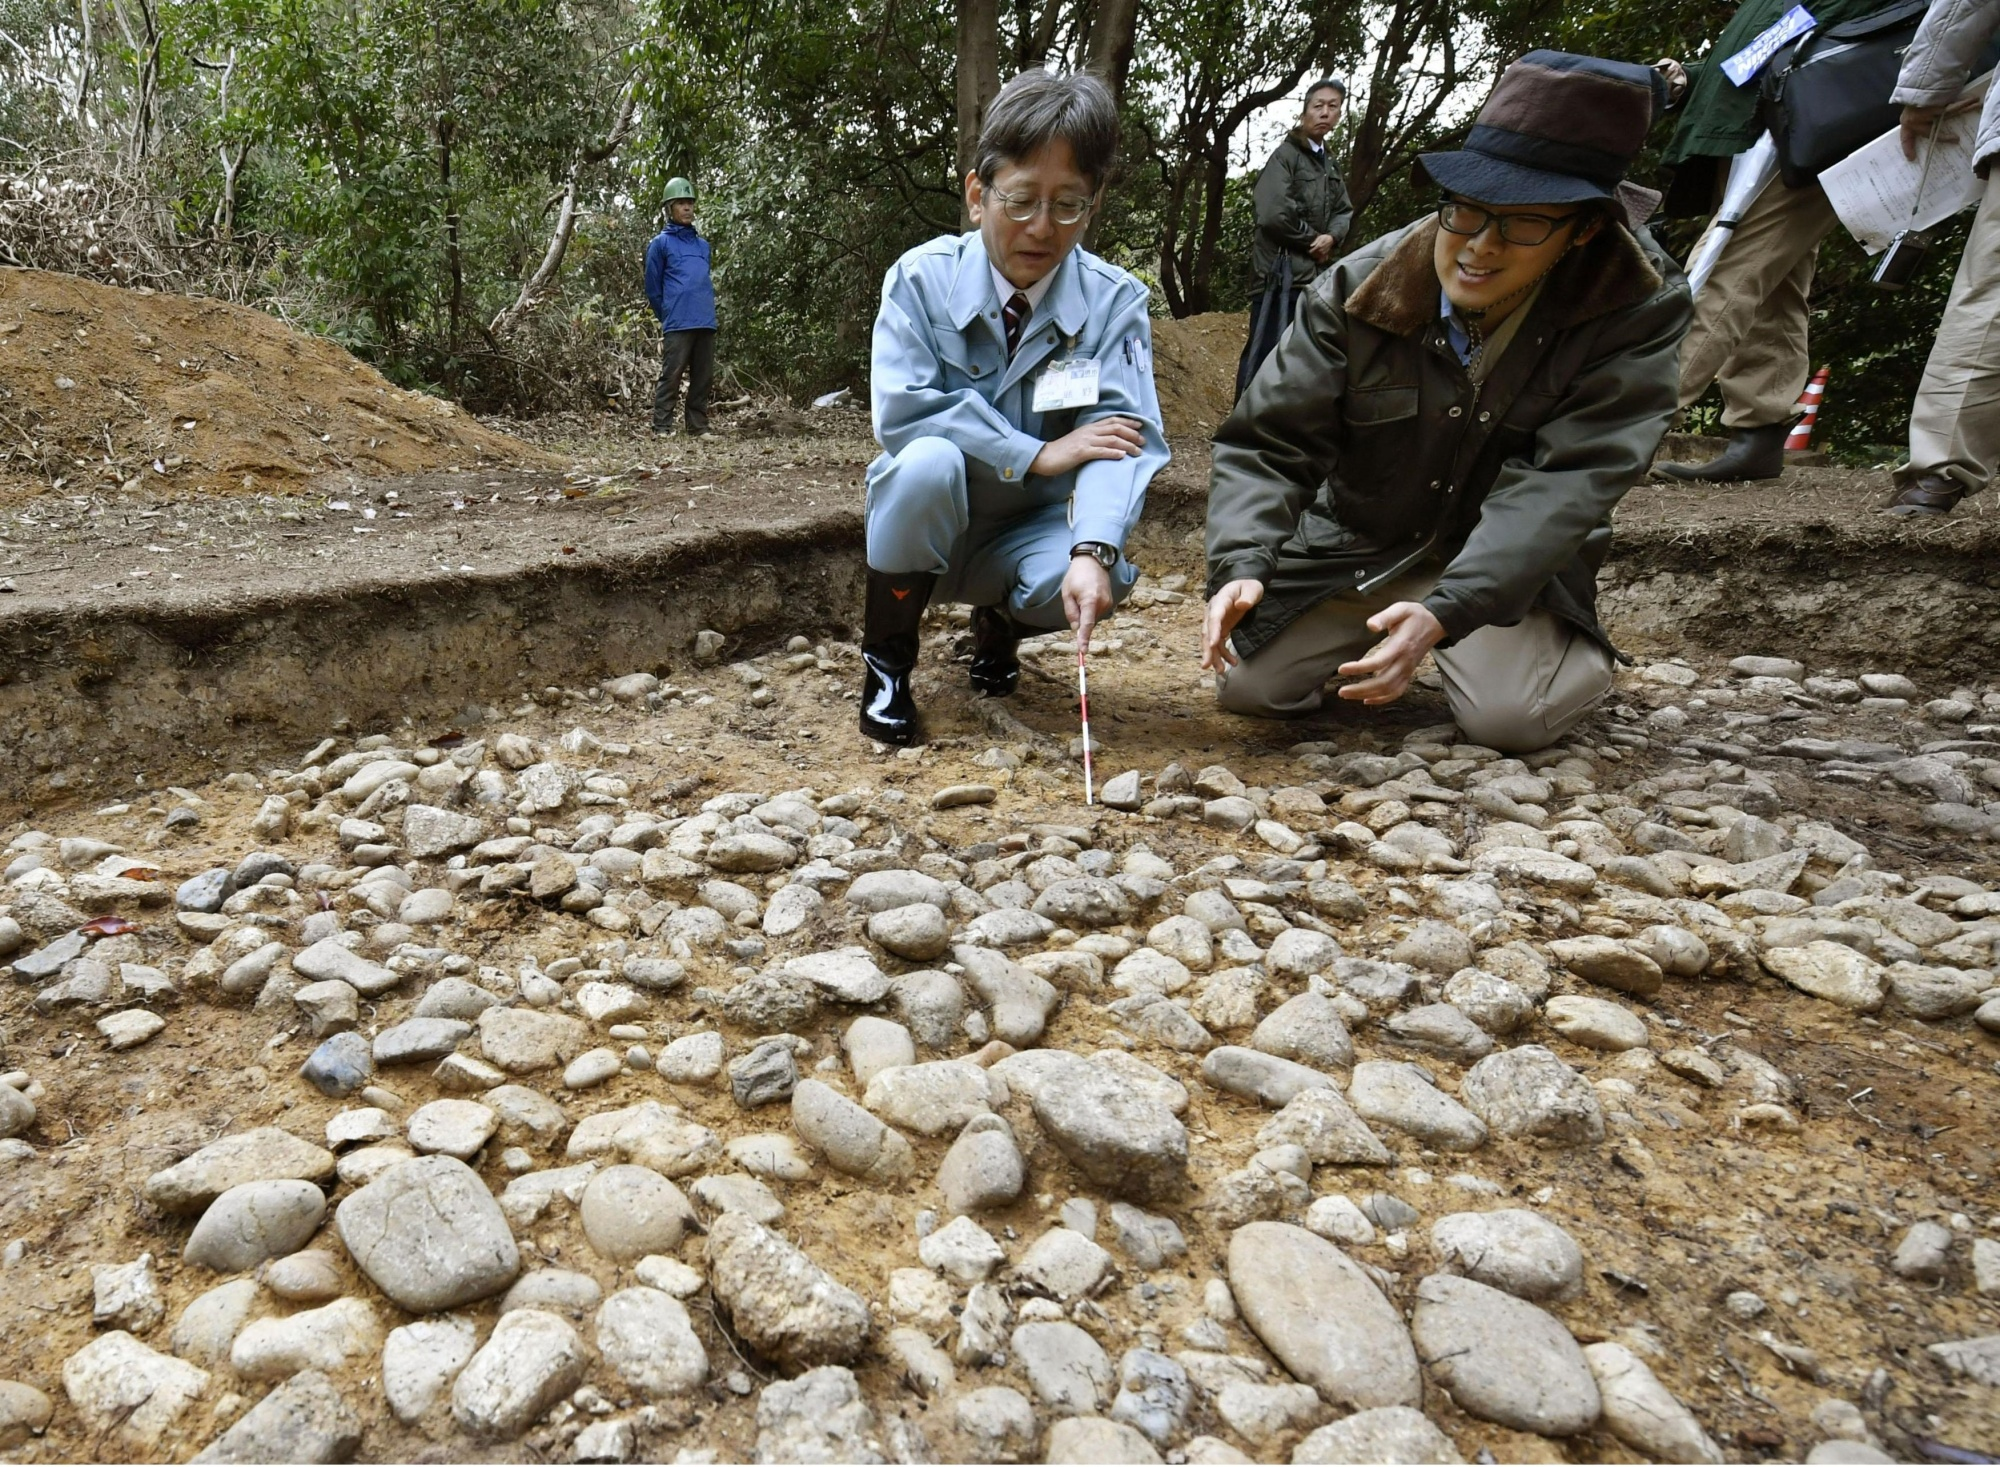 An official (left) from the city of Sakai in Osaka Prefecture and a representative of the Imperial Household Agency explain a stone-paved greenbelt surrounding the Daisen Kofun tomb on Thursday. | KYODO